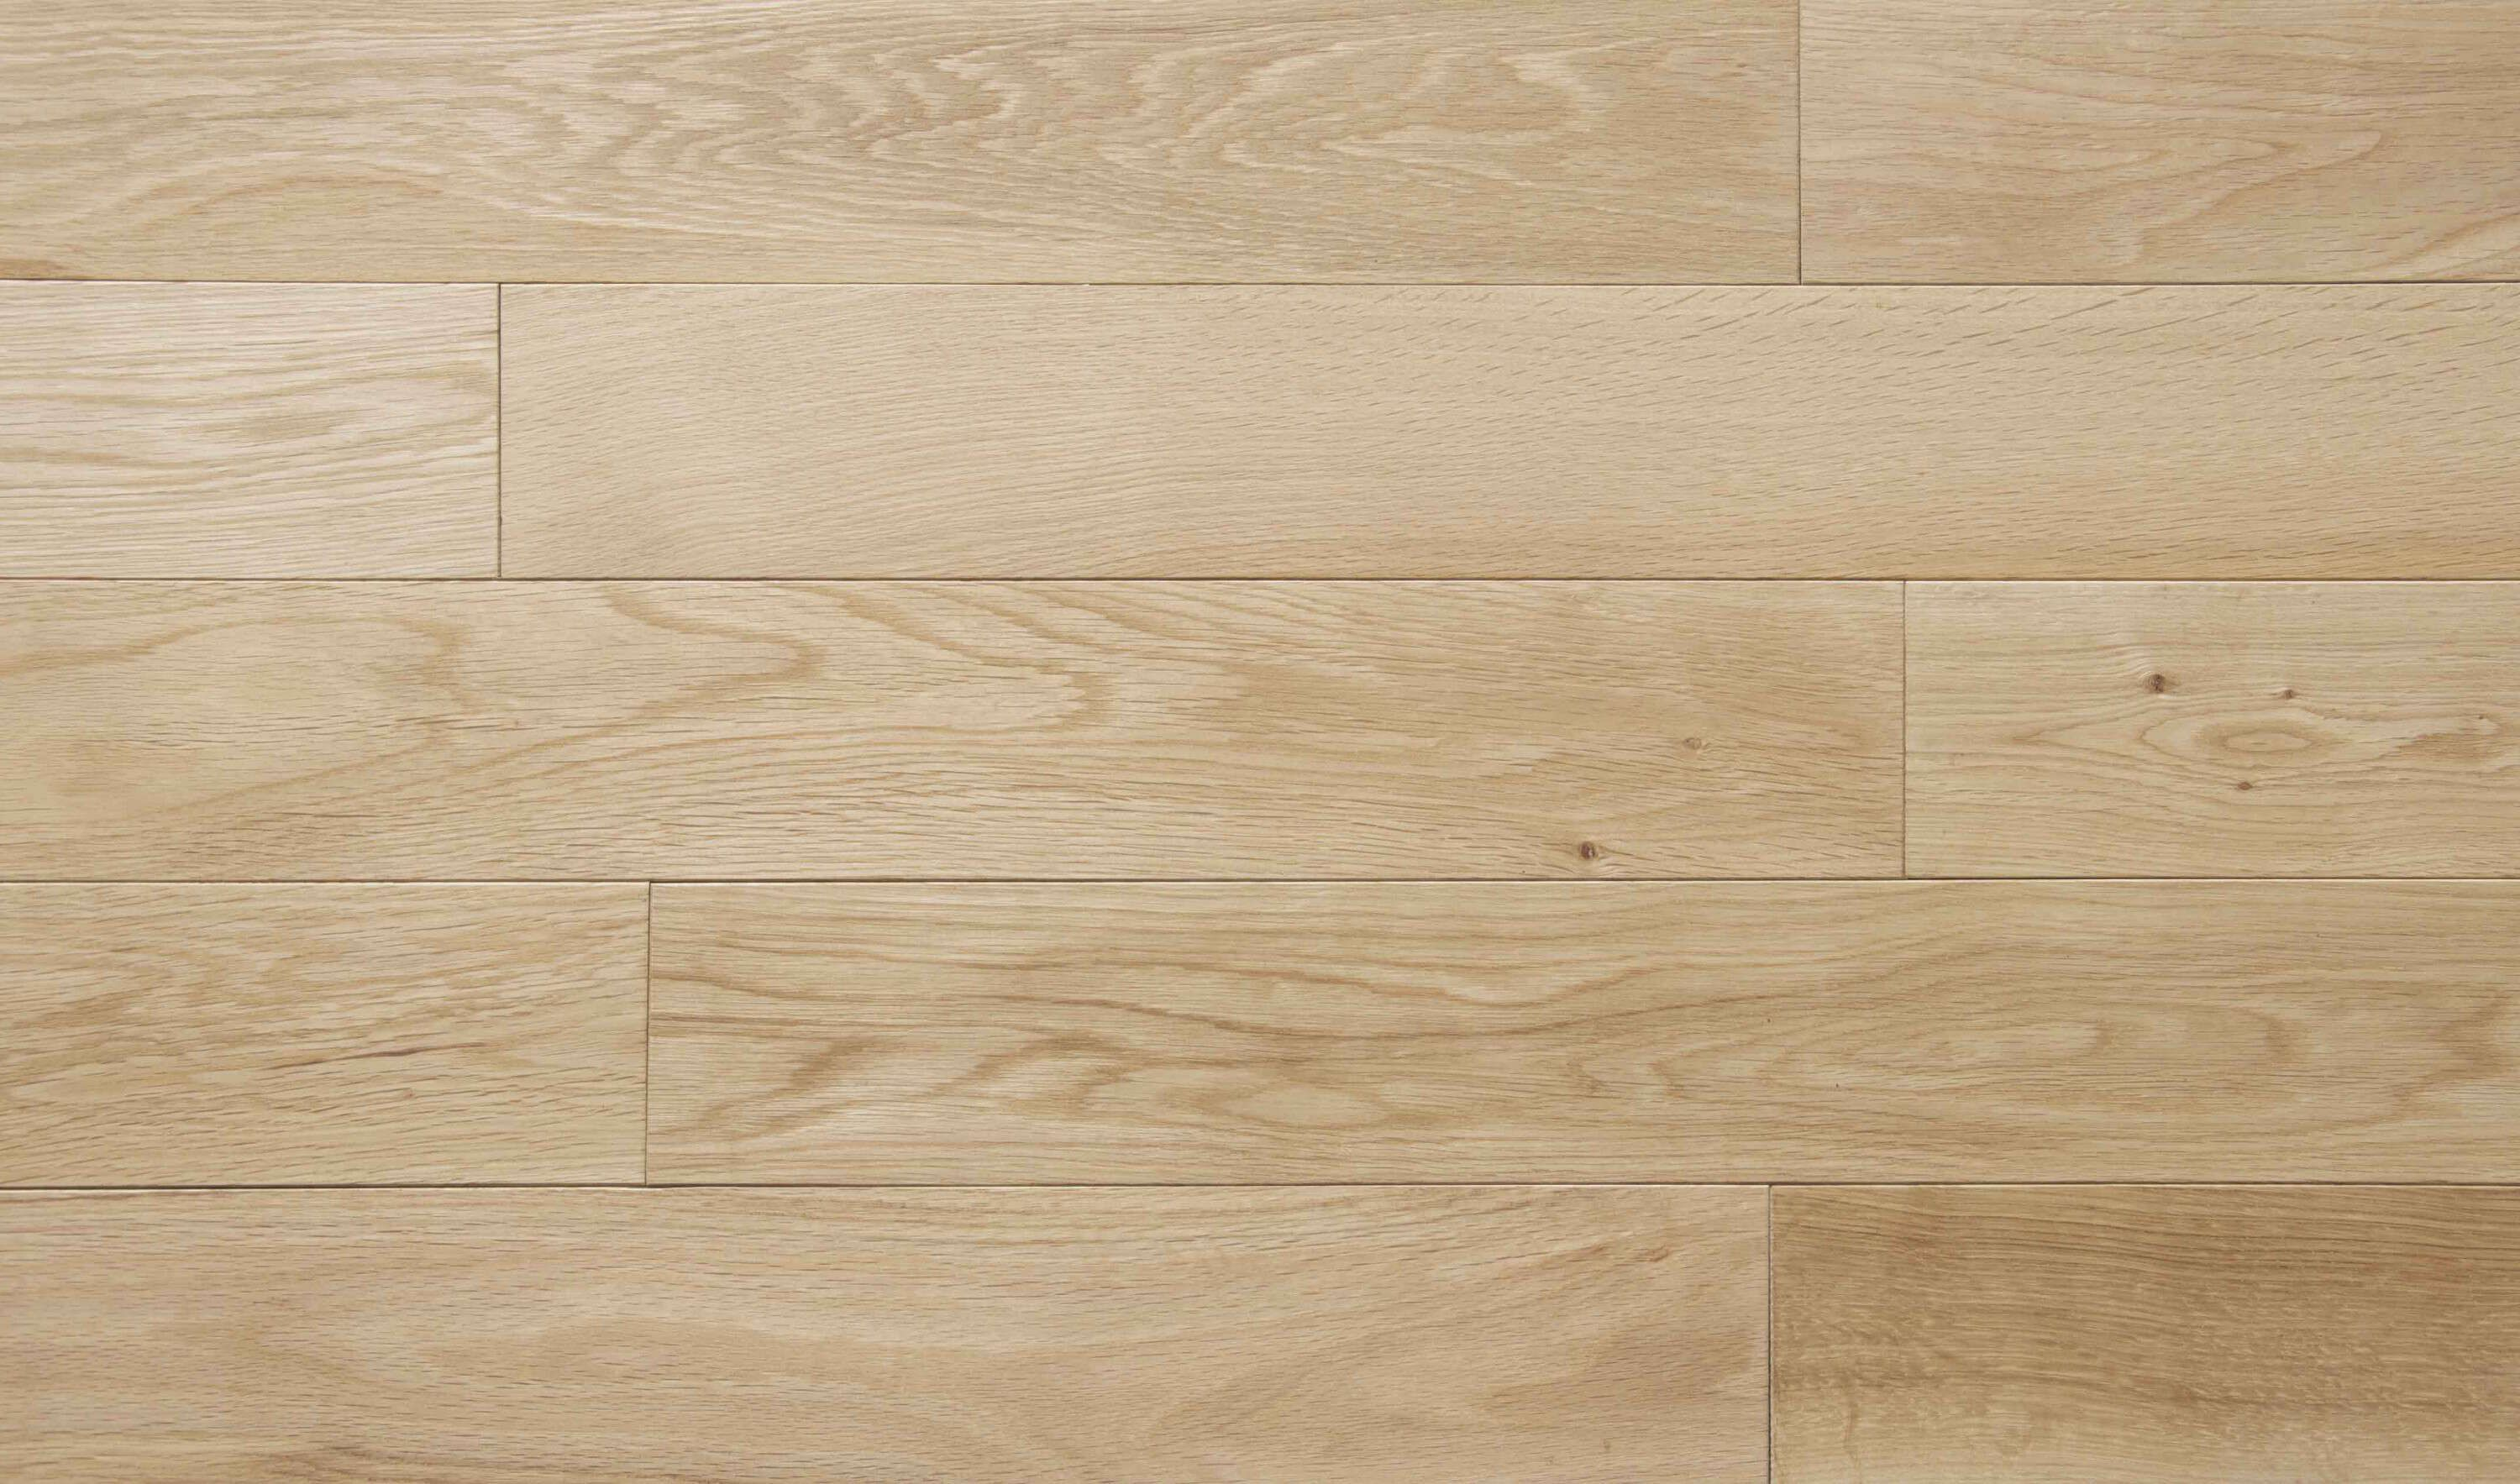 Oakwood parquet ch ne massif wood and limanate floors for Hardwood floors 60 minutes